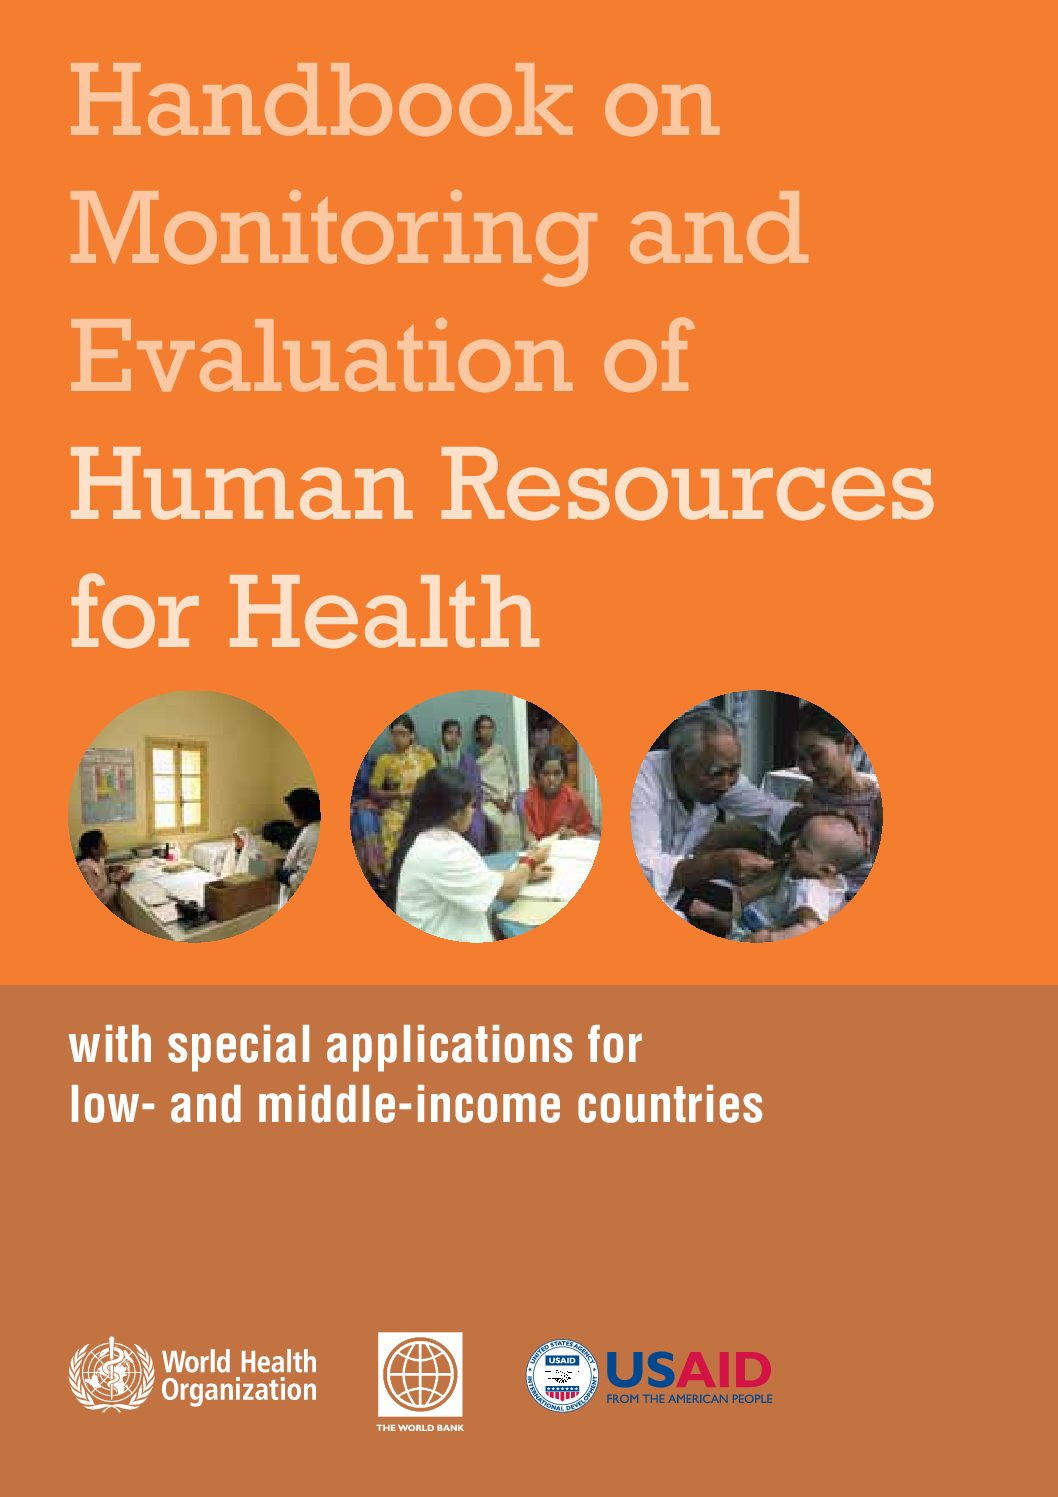 Handbook on monitoring and evaluation of human resources for health: with special applications for low- and middle-income countries